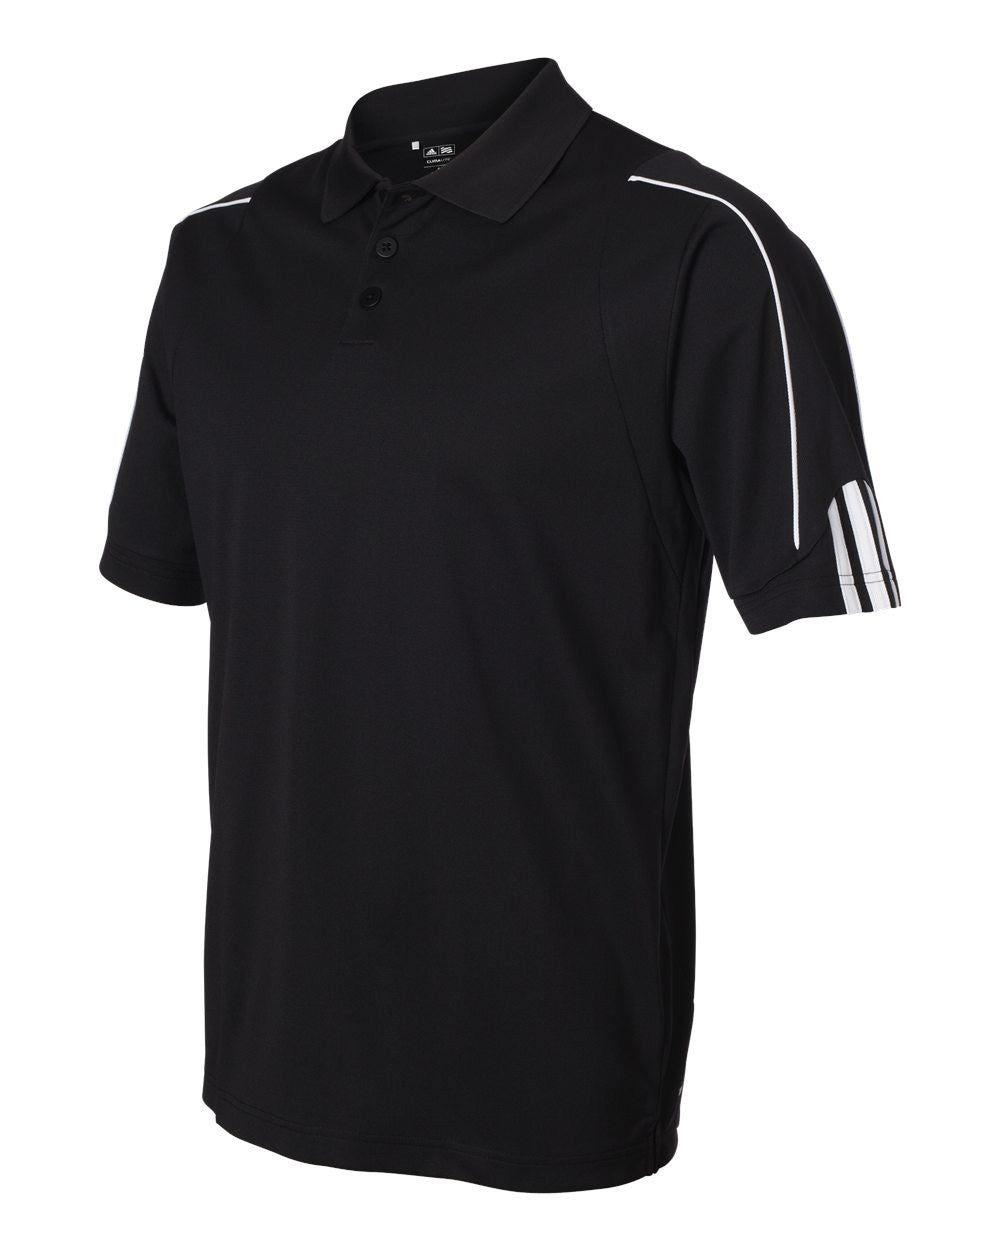 3 stripes Pique by Adidas - Discountedrack.com